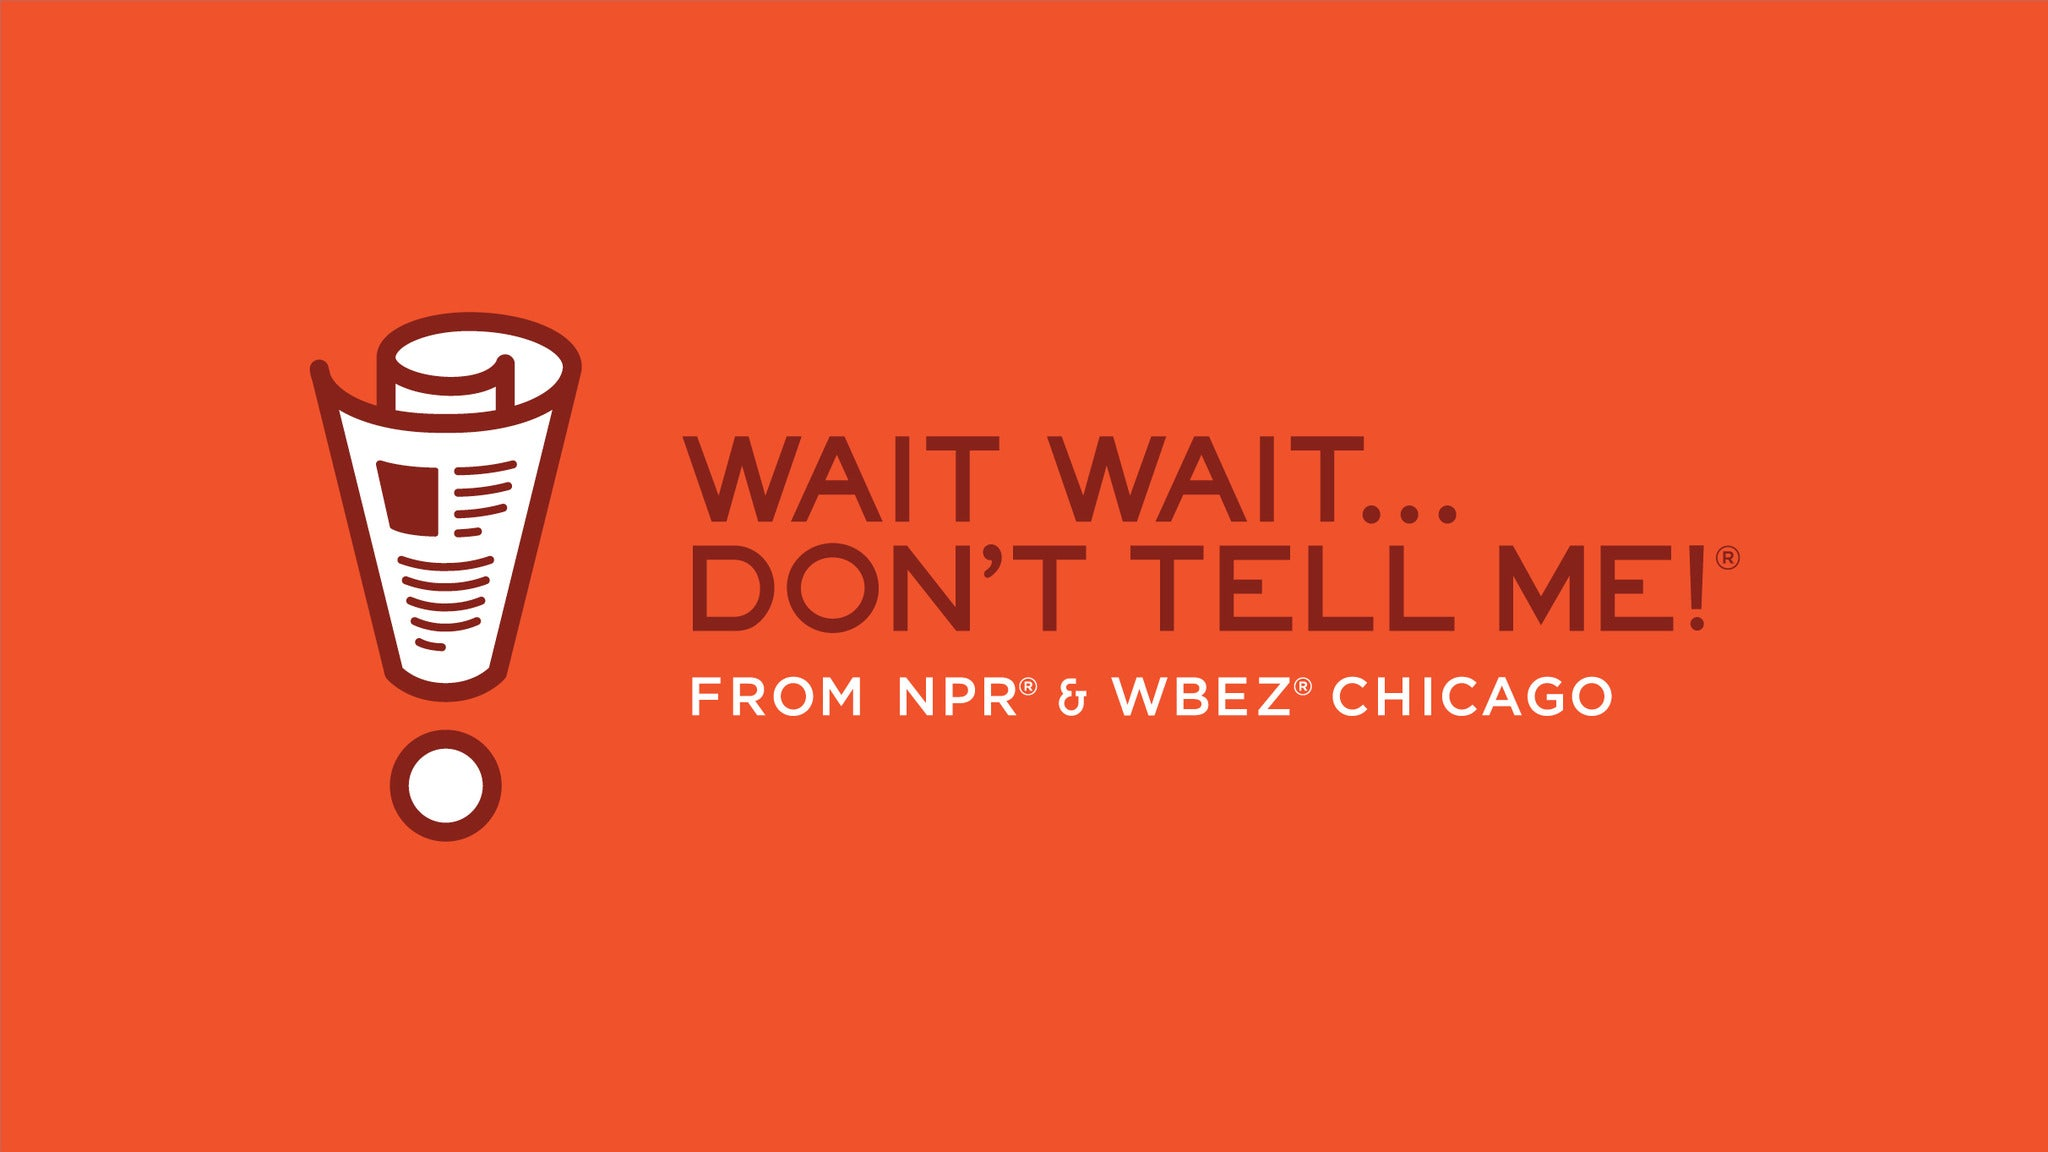 NPR's Wait Wait Don't Tell Me